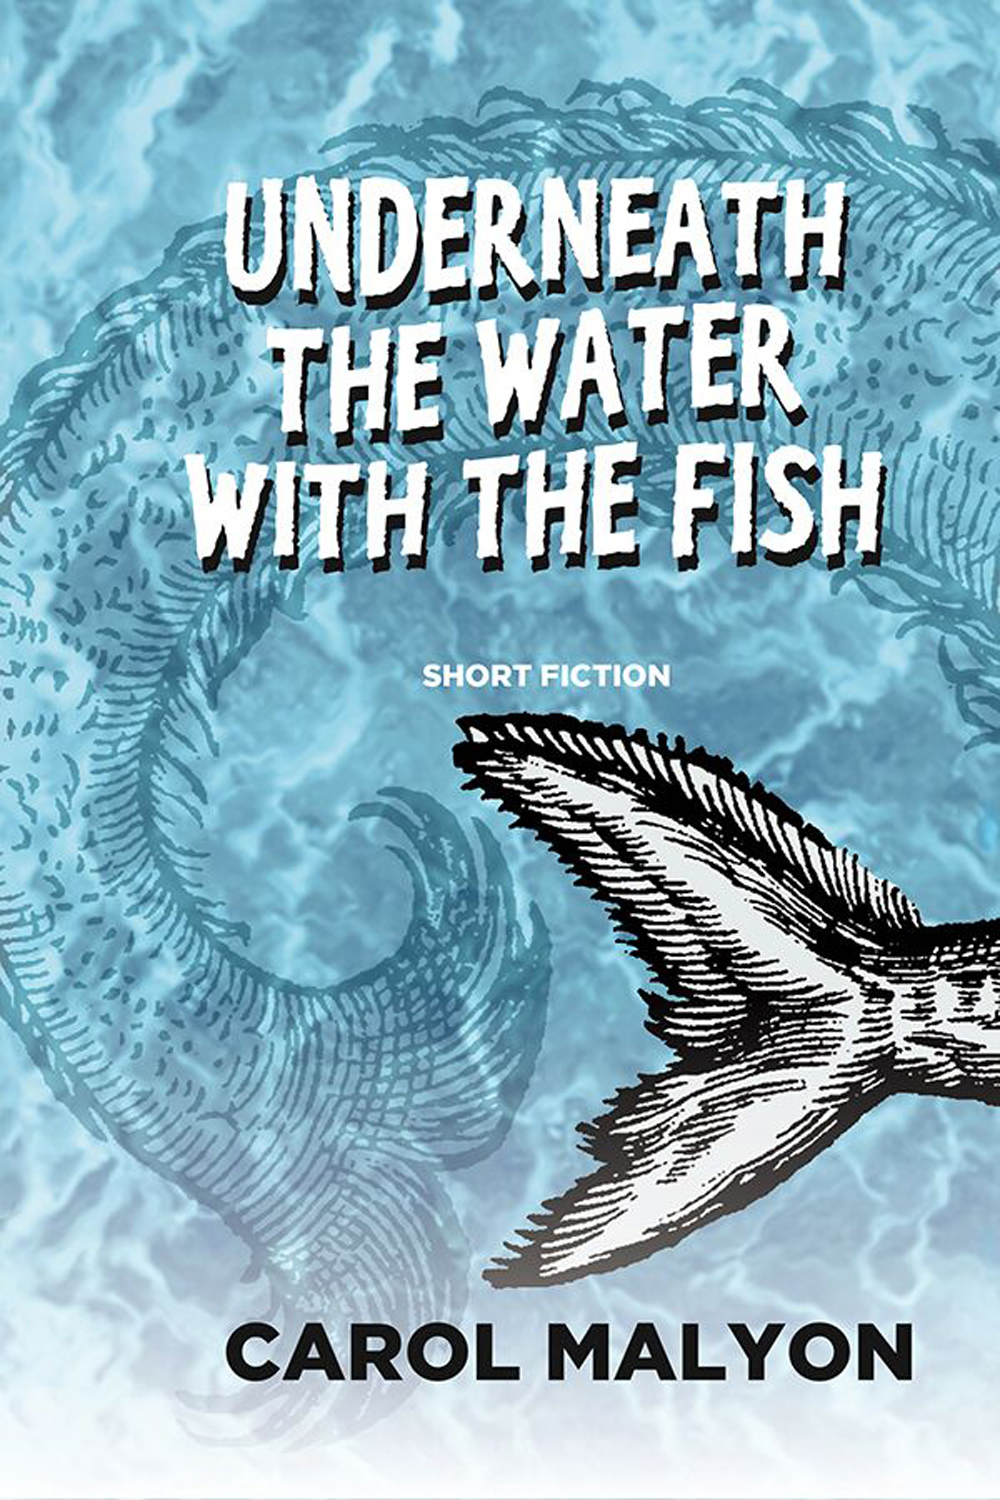 Underneath the Water with the Fish